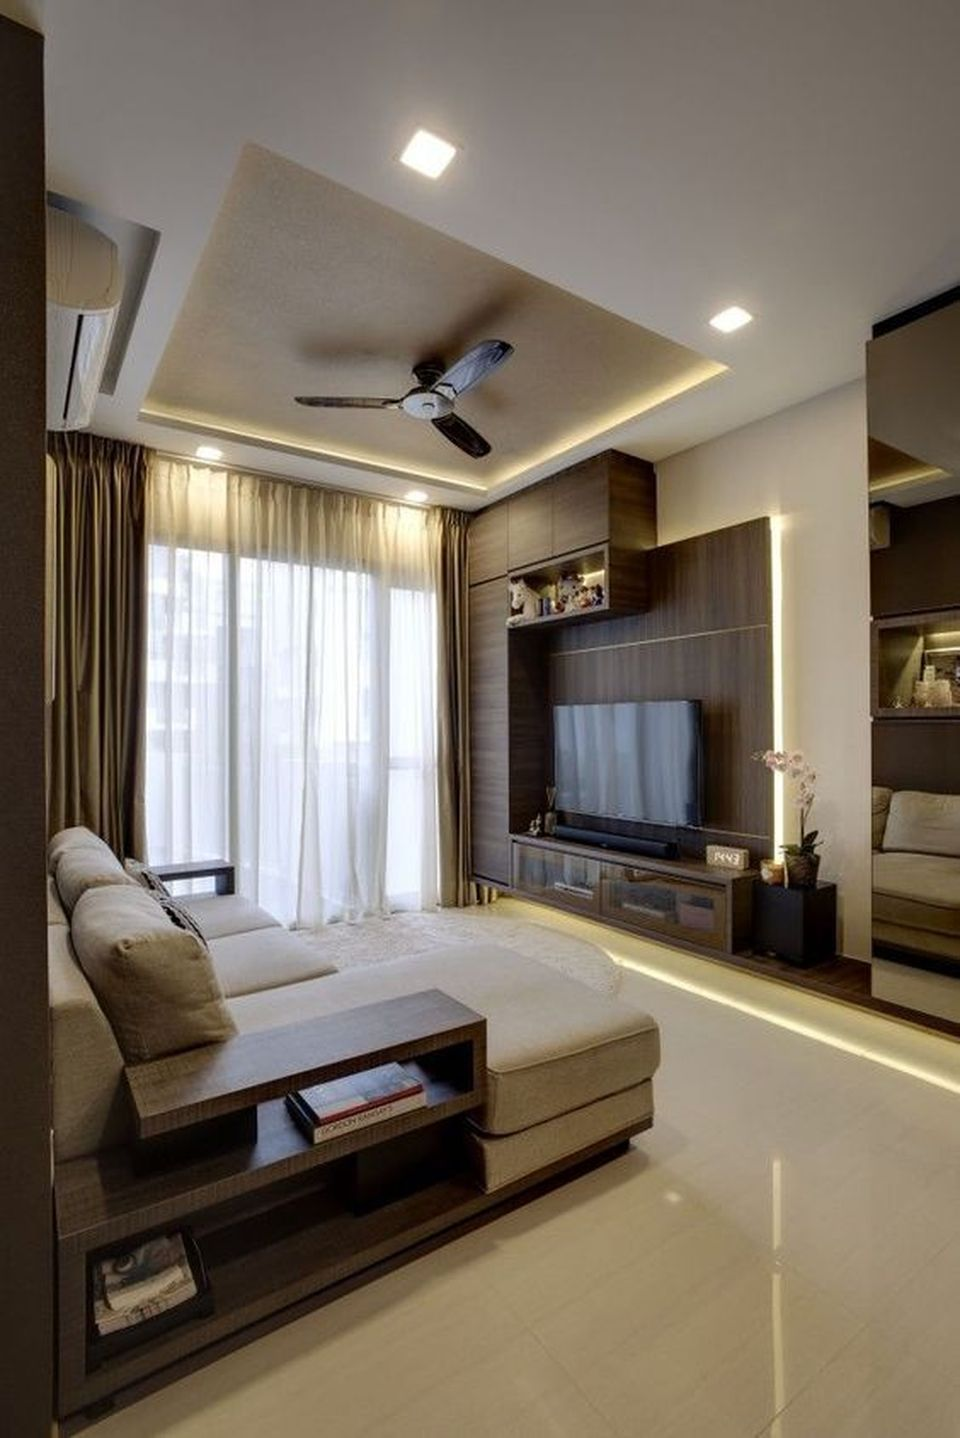 False Ceiling Designs For Living Room In Flats: 70 Modern False Ceilings With Cove Lighting Design For